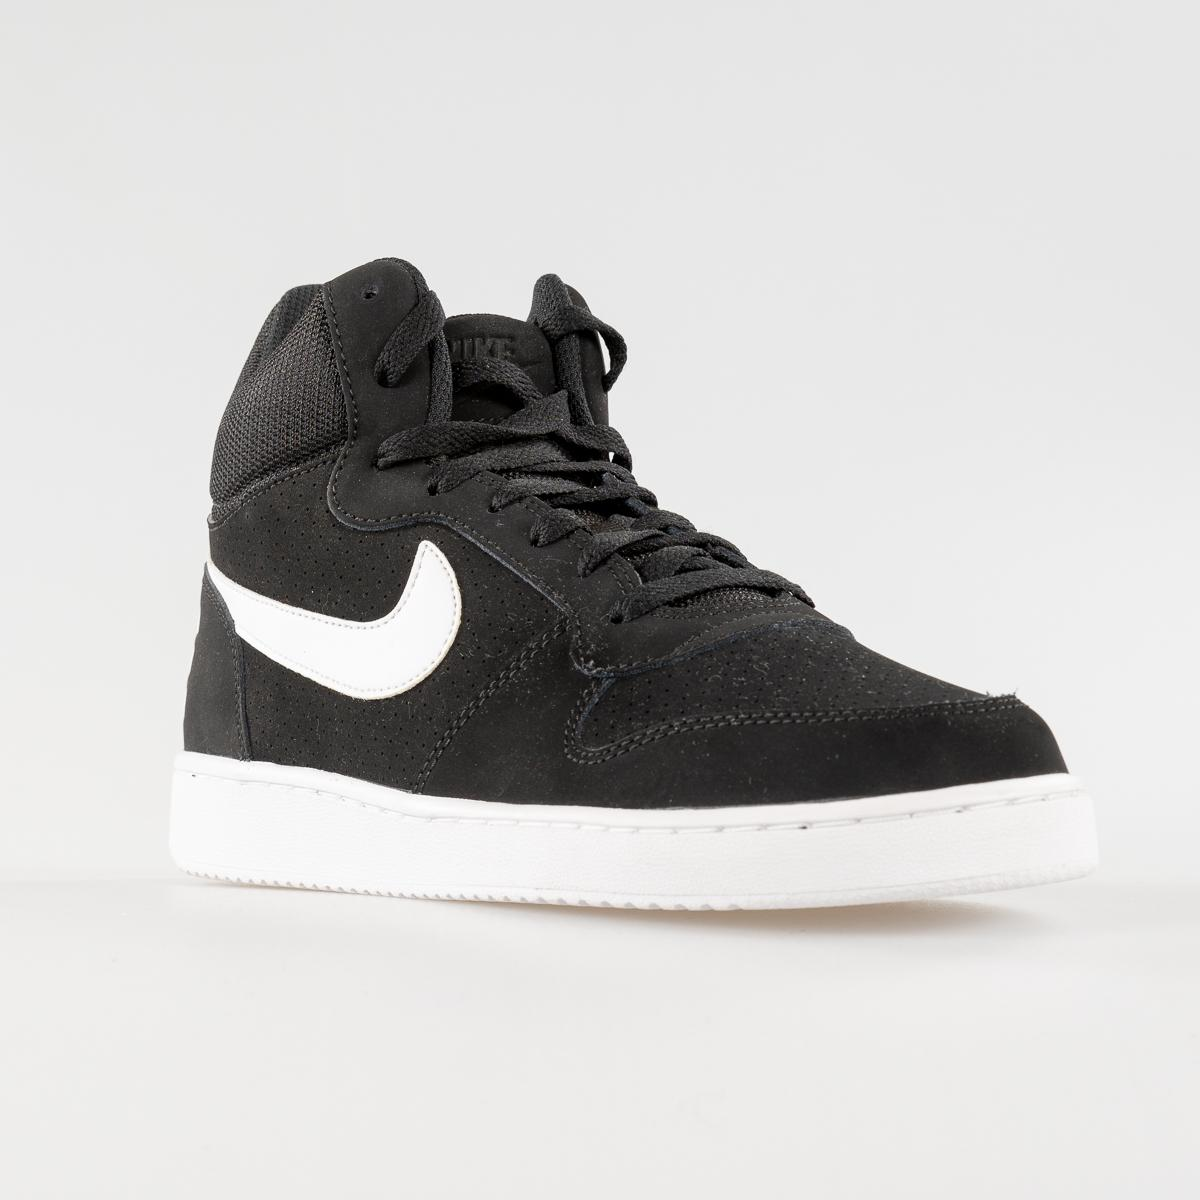 SCARPE UNISEX NIKE COURT B0ROUGH MID 838938 010 BLACK/WHITE